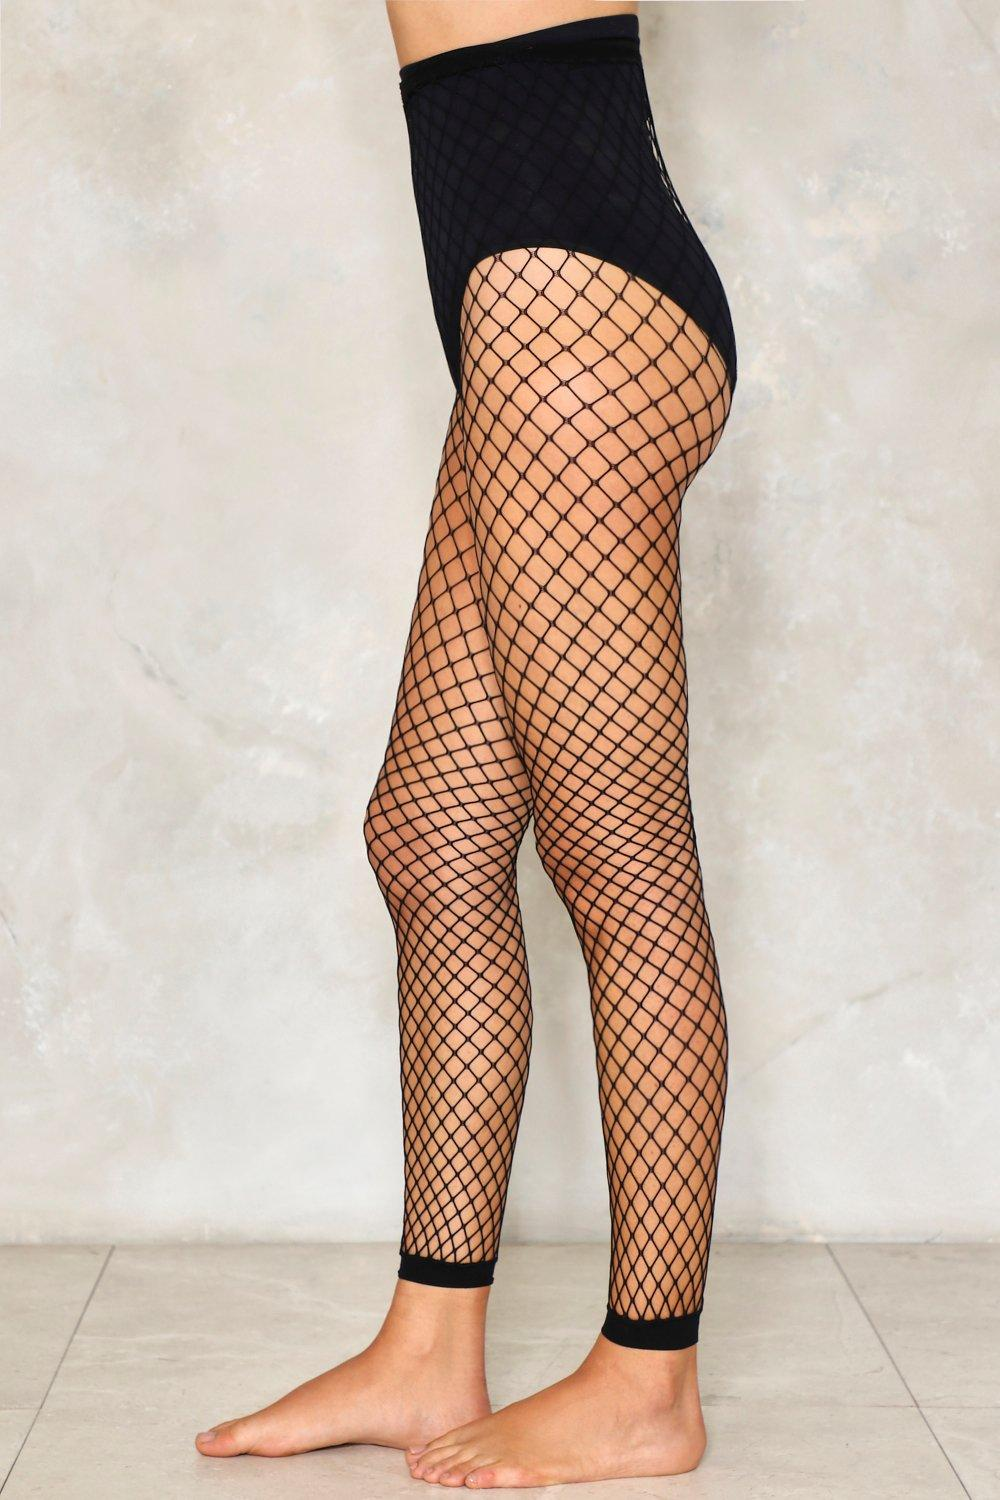 d63e64cb1727fa Like a Prayer Cropped Fishnet Tights | Shop Clothes at Nasty Gal!